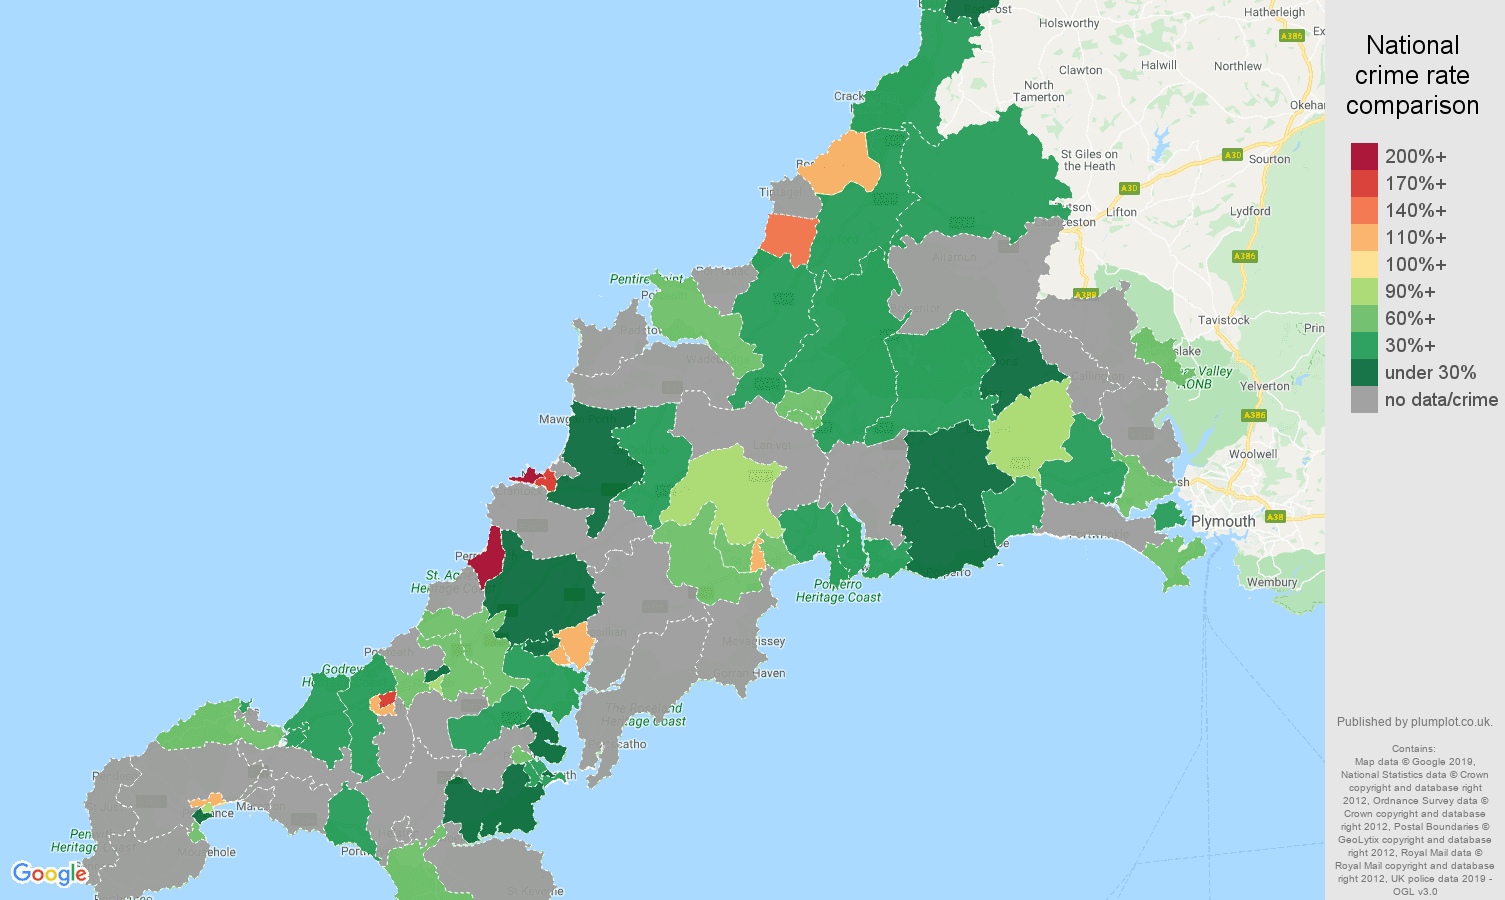 Cornwall possession of weapons crime rate comparison map